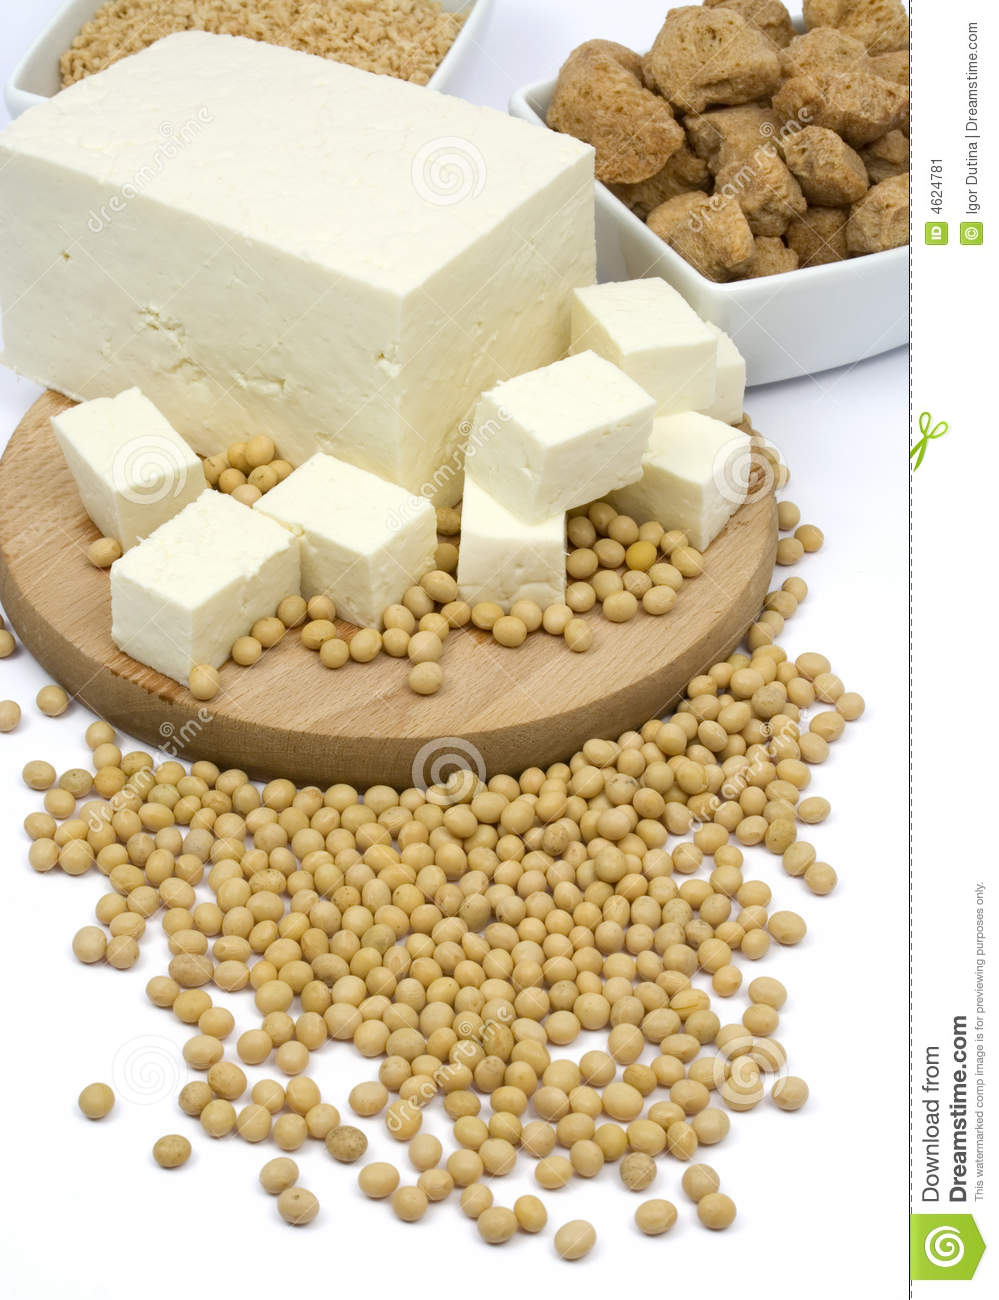 Tofu Cheese And Soy Beans Stock Image - Image: 4624781